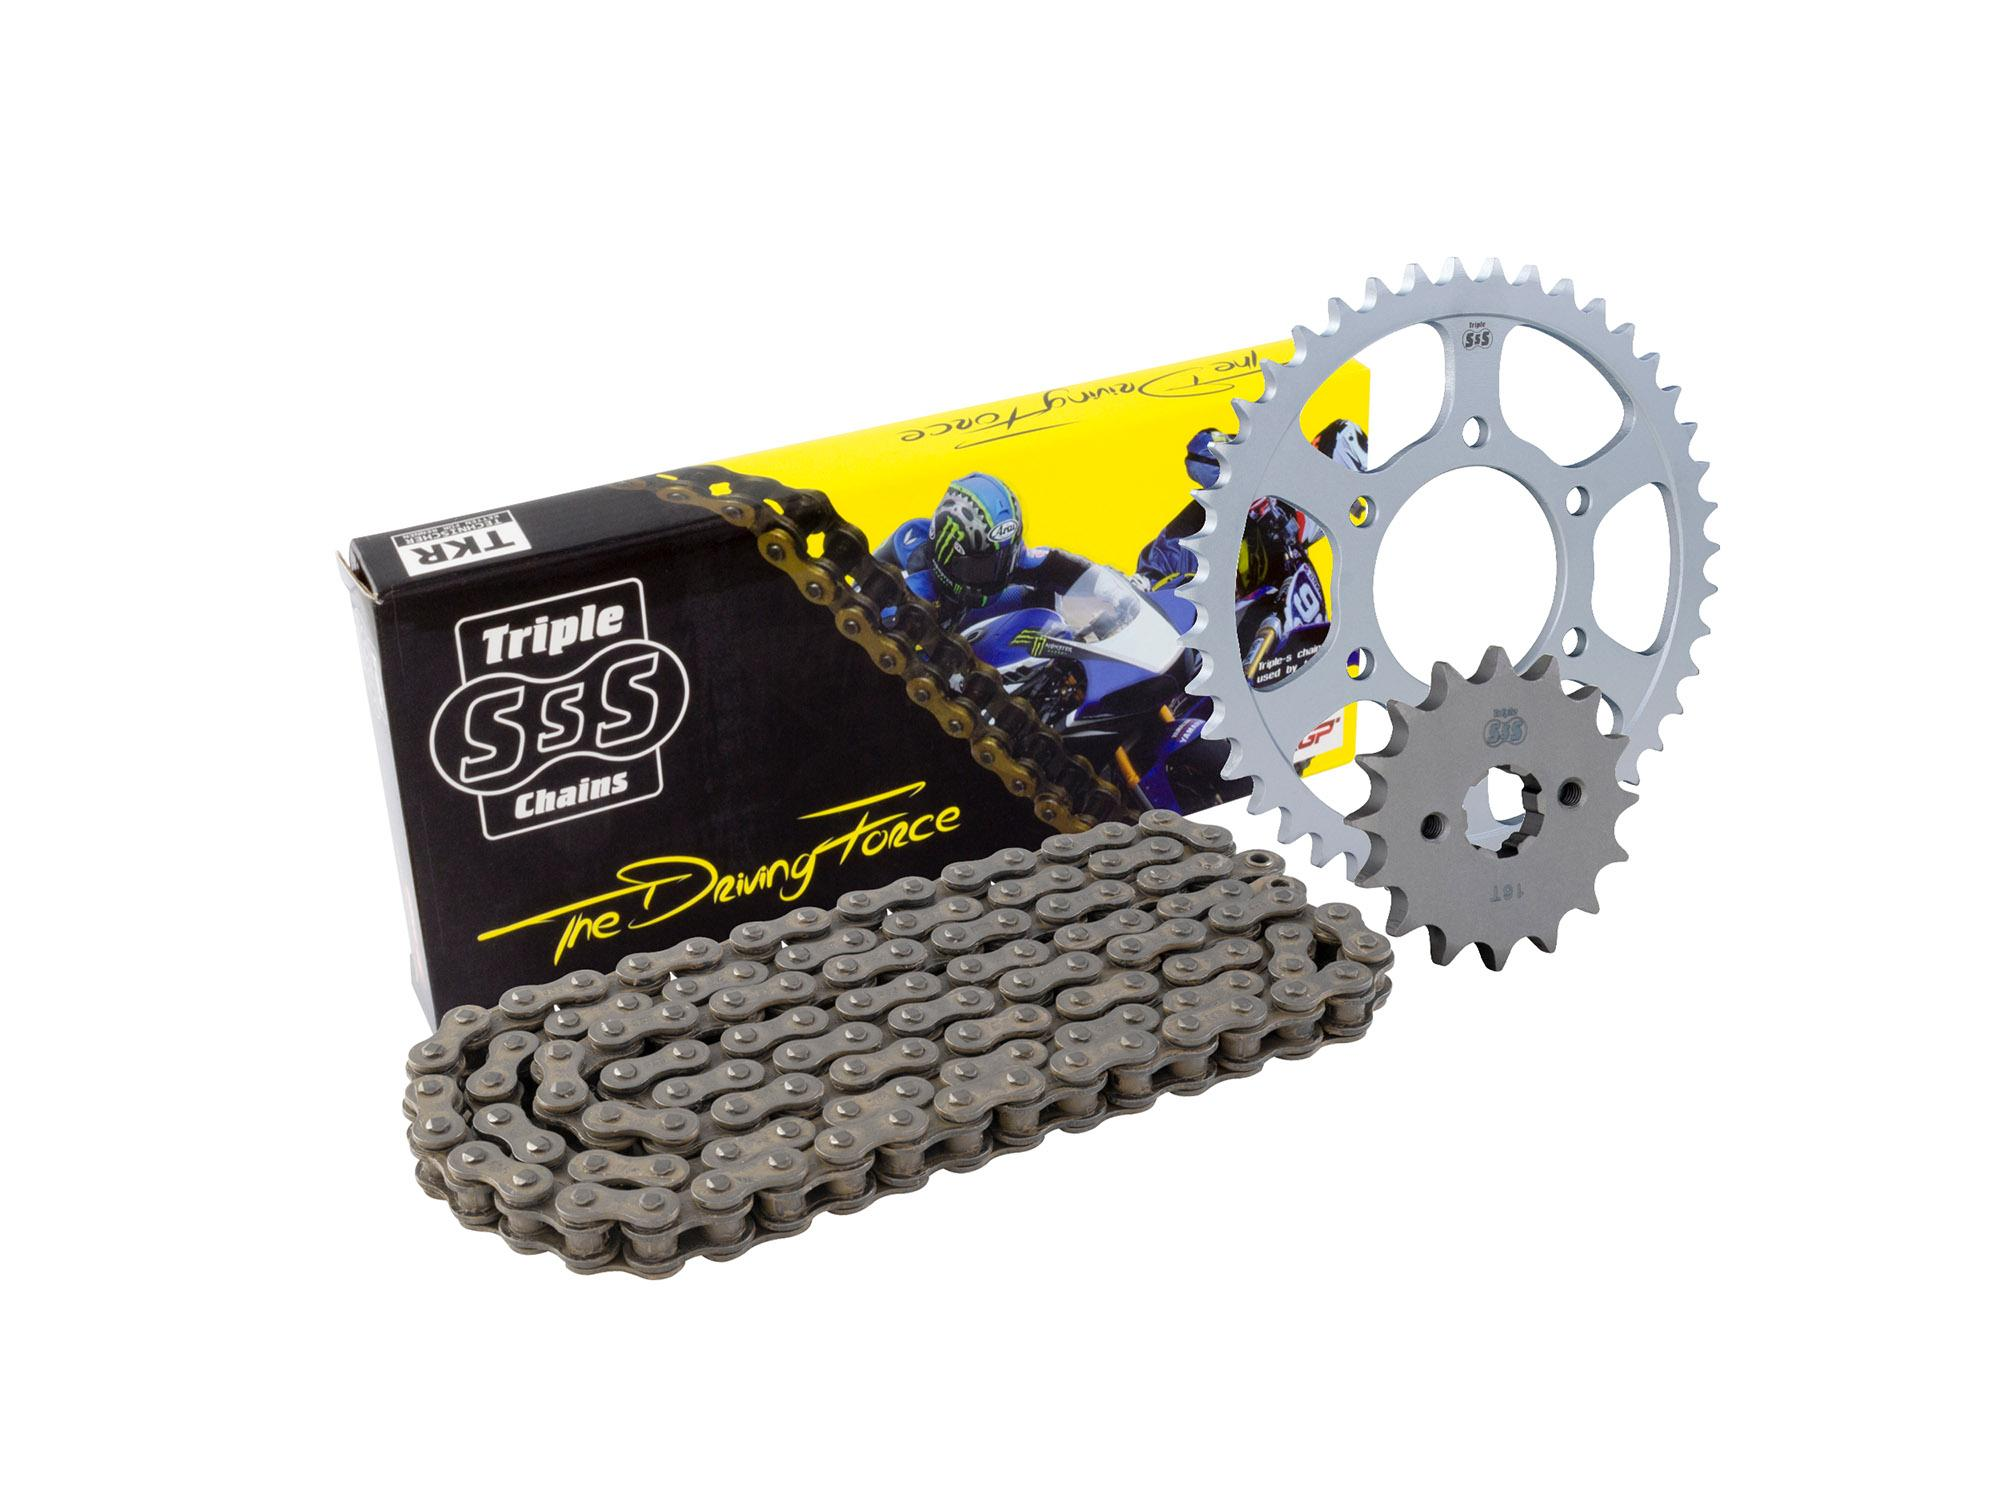 Honda CBR500 13-16 Chain & Sprocket Kit: 15T Front, 41T Rear, HD O-Ring Black Chain 520H 112Link